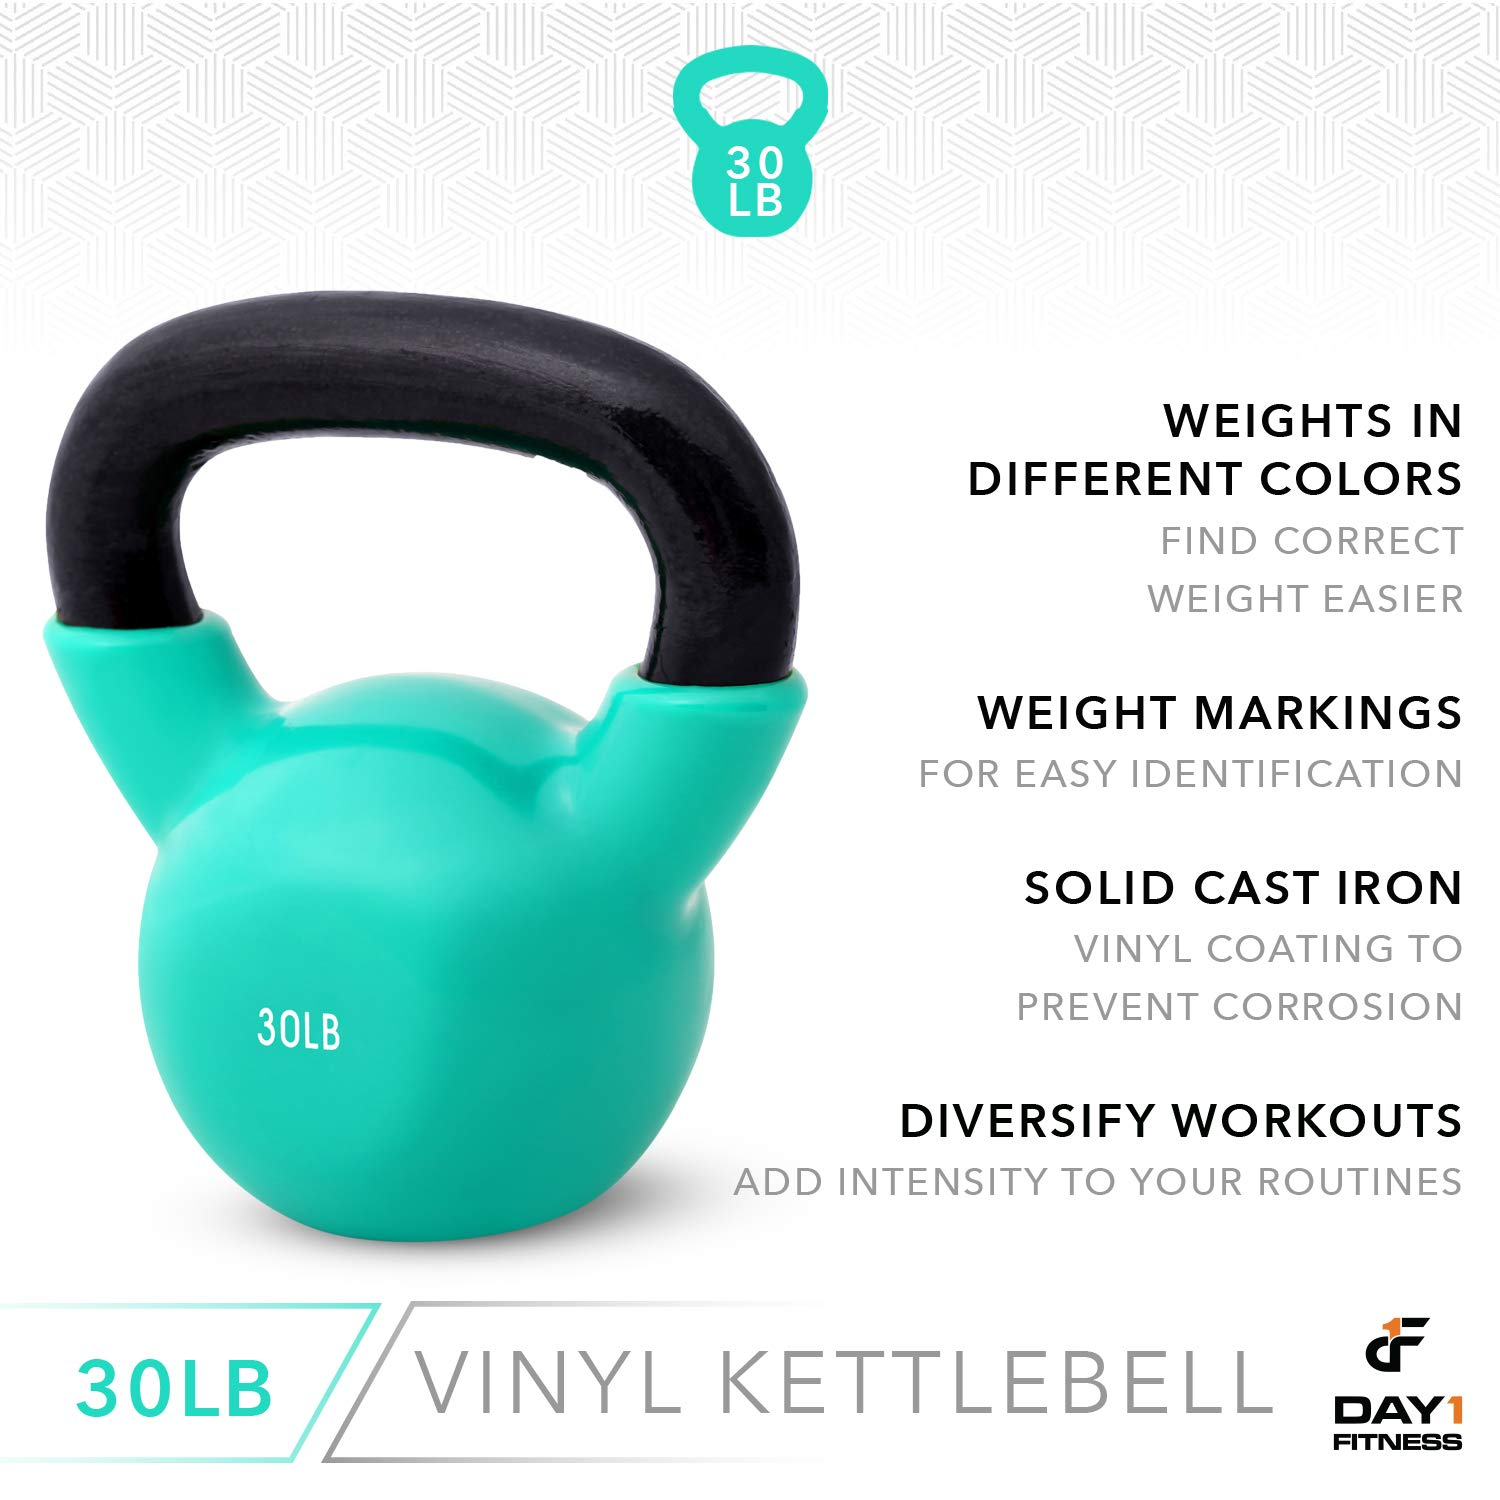 Day 1 Fitness Kettlebell Weights Vinyl Coated Iron 30 Pounds - Coated for Floor and Equipment Protection, Noise Reduction - Free Weights for Ballistic, Core, Weight Training by Day 1 Fitness (Image #5)